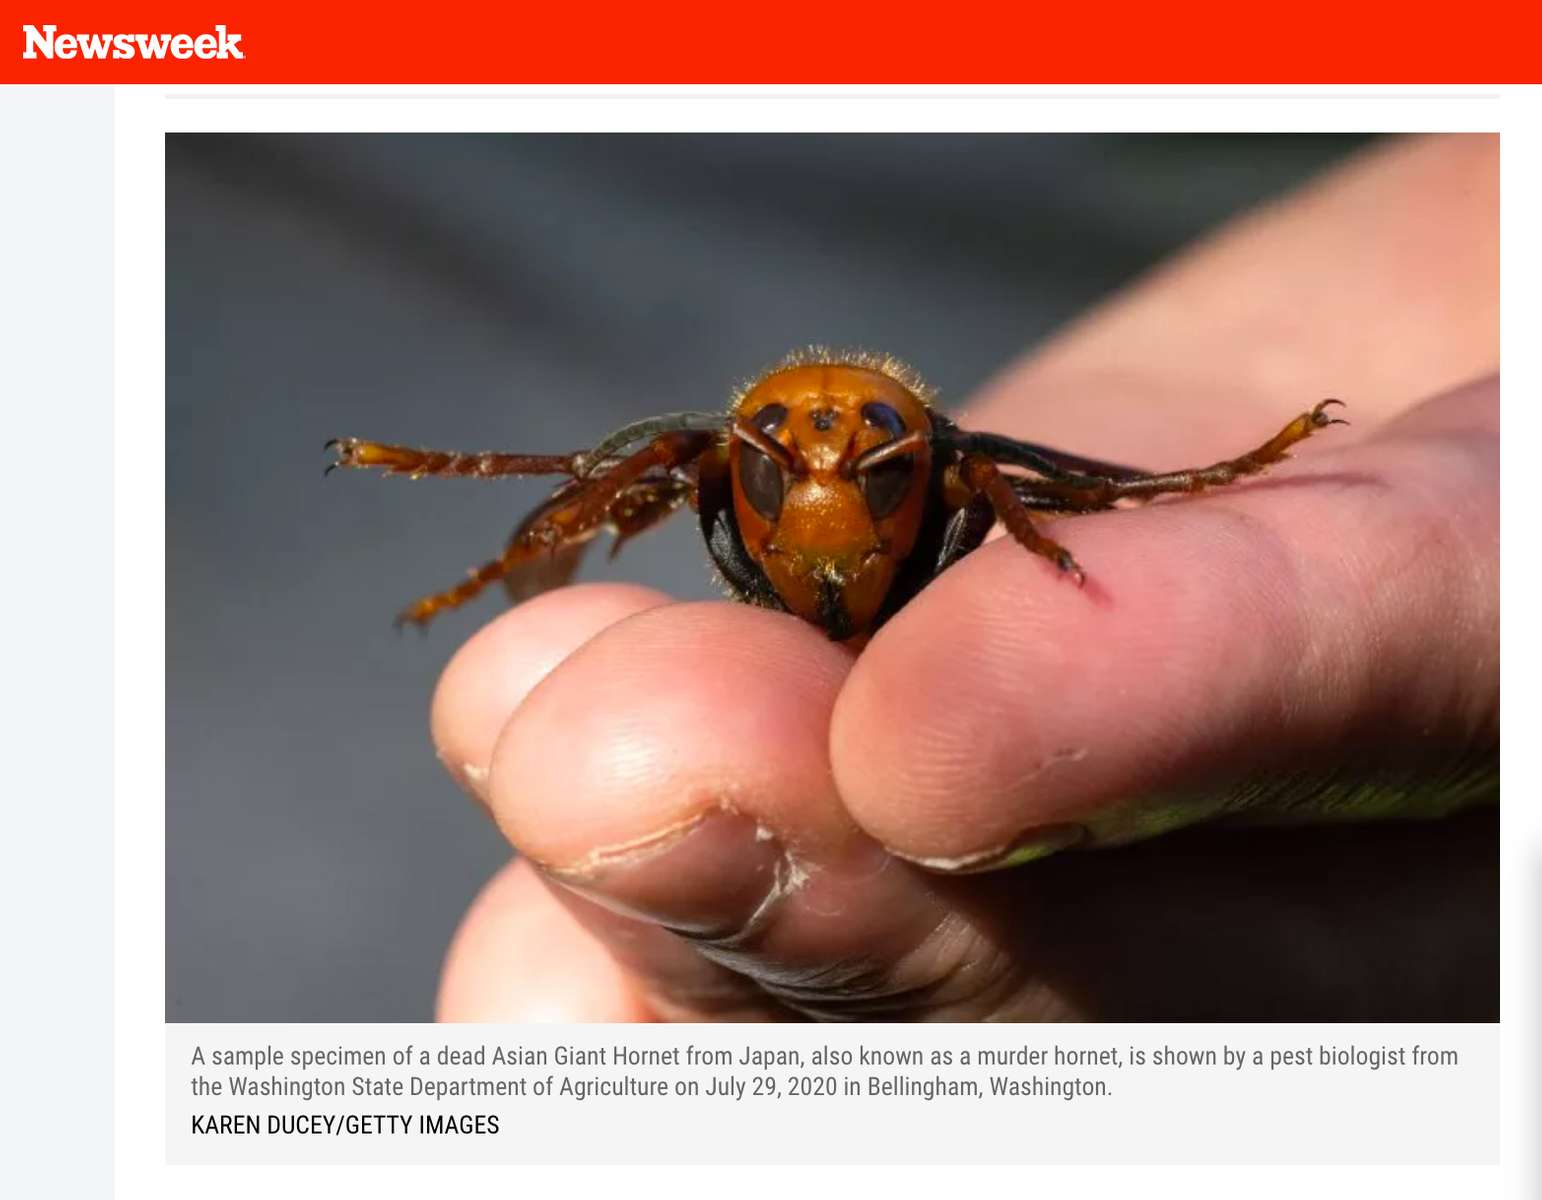 Officials Caught a Murder Hornet and This Is What it Looks Like Up Close, for Getty Images, Published in Newsweek, August 18, 2020.